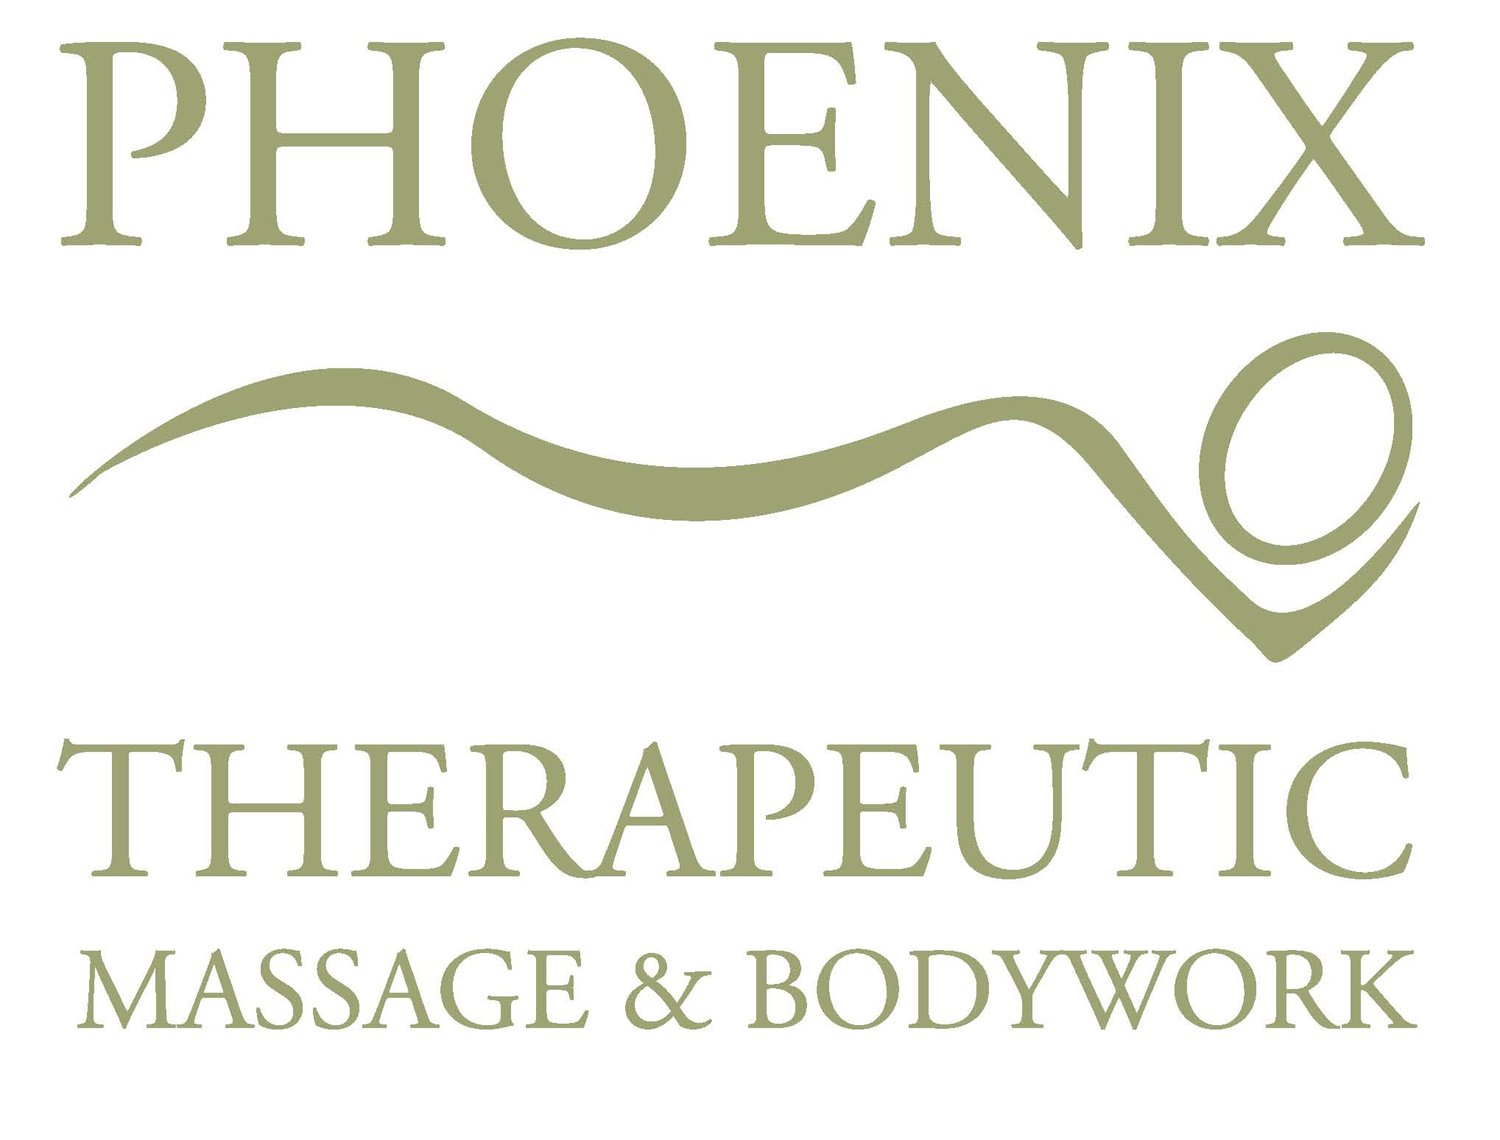 Phoenix Therapeutic Massage & Bodywork